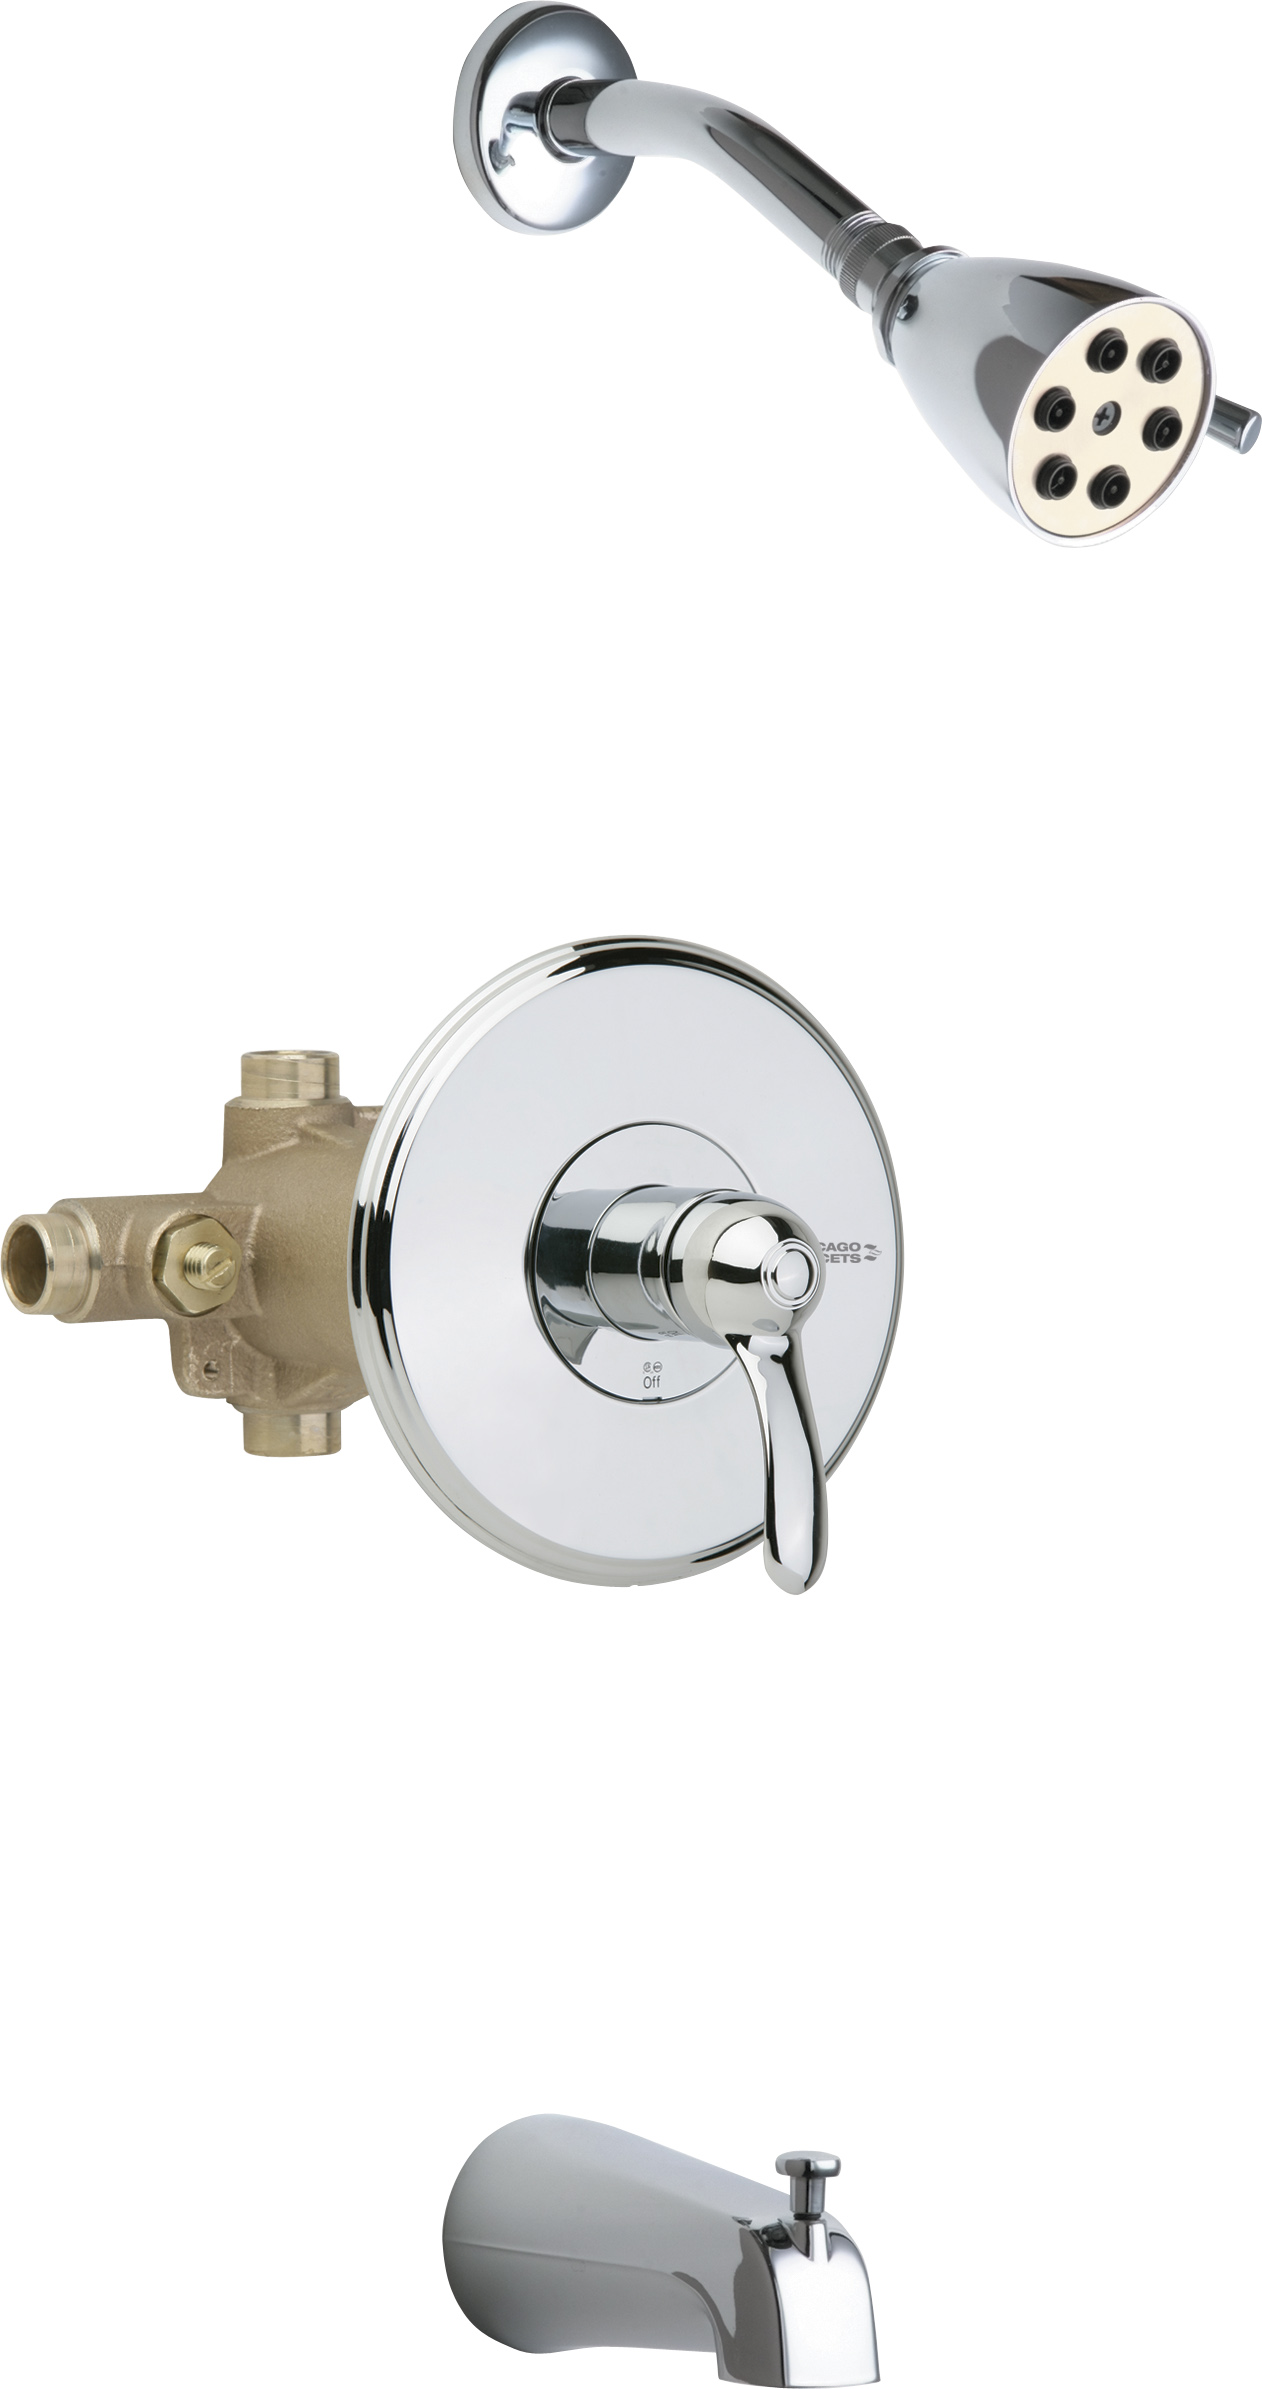 Thermostatic Pressure Balancing Tub And Shower Fitting With Shower Head And Diverter Tub Spout Options